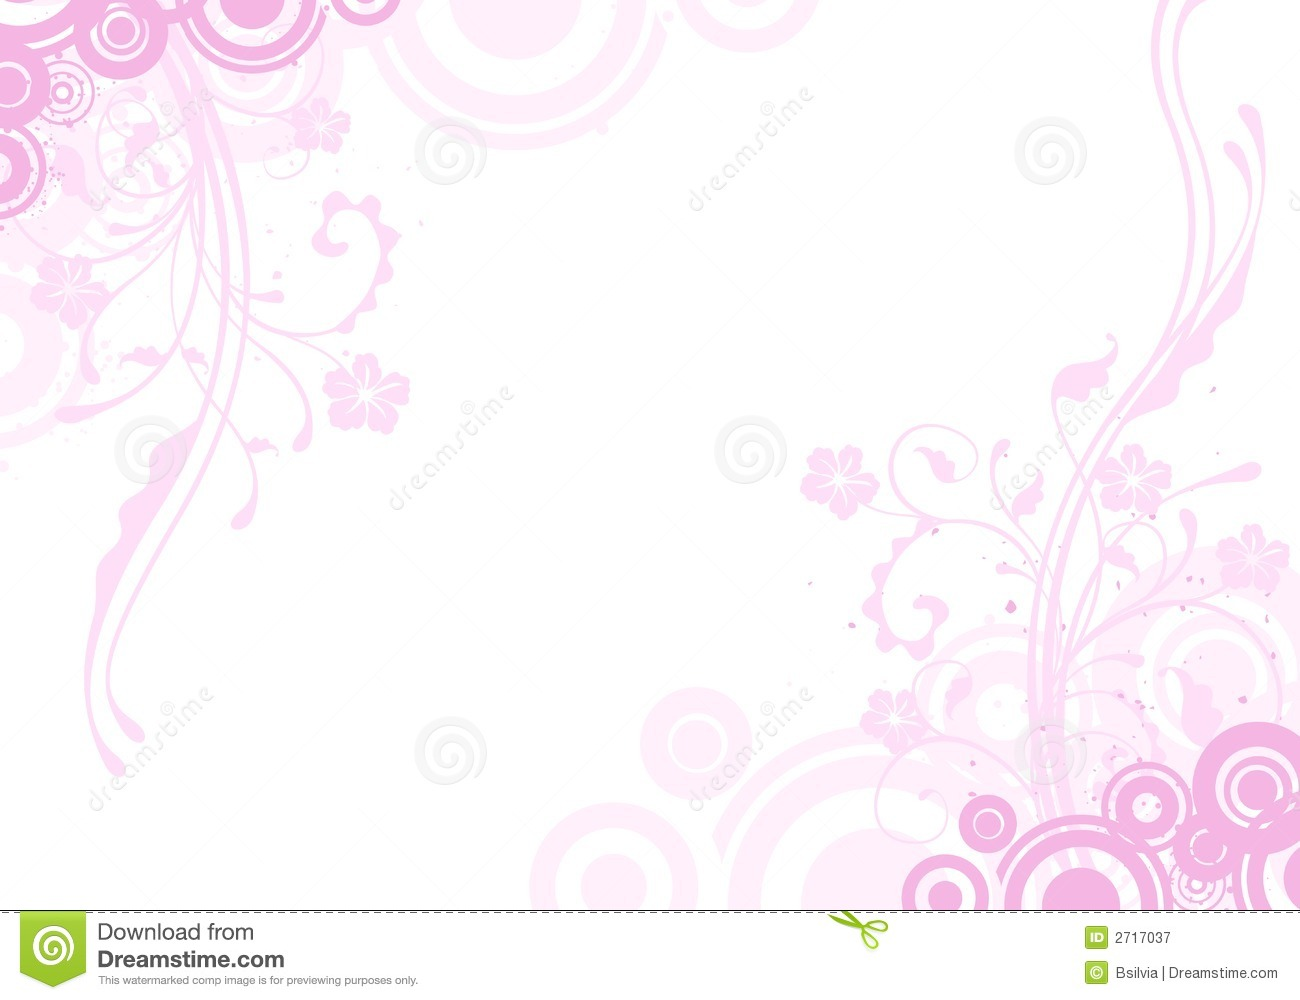 Disney Art Of Animation Floor Plan Pink Flower Background Royalty Free Stock Photography